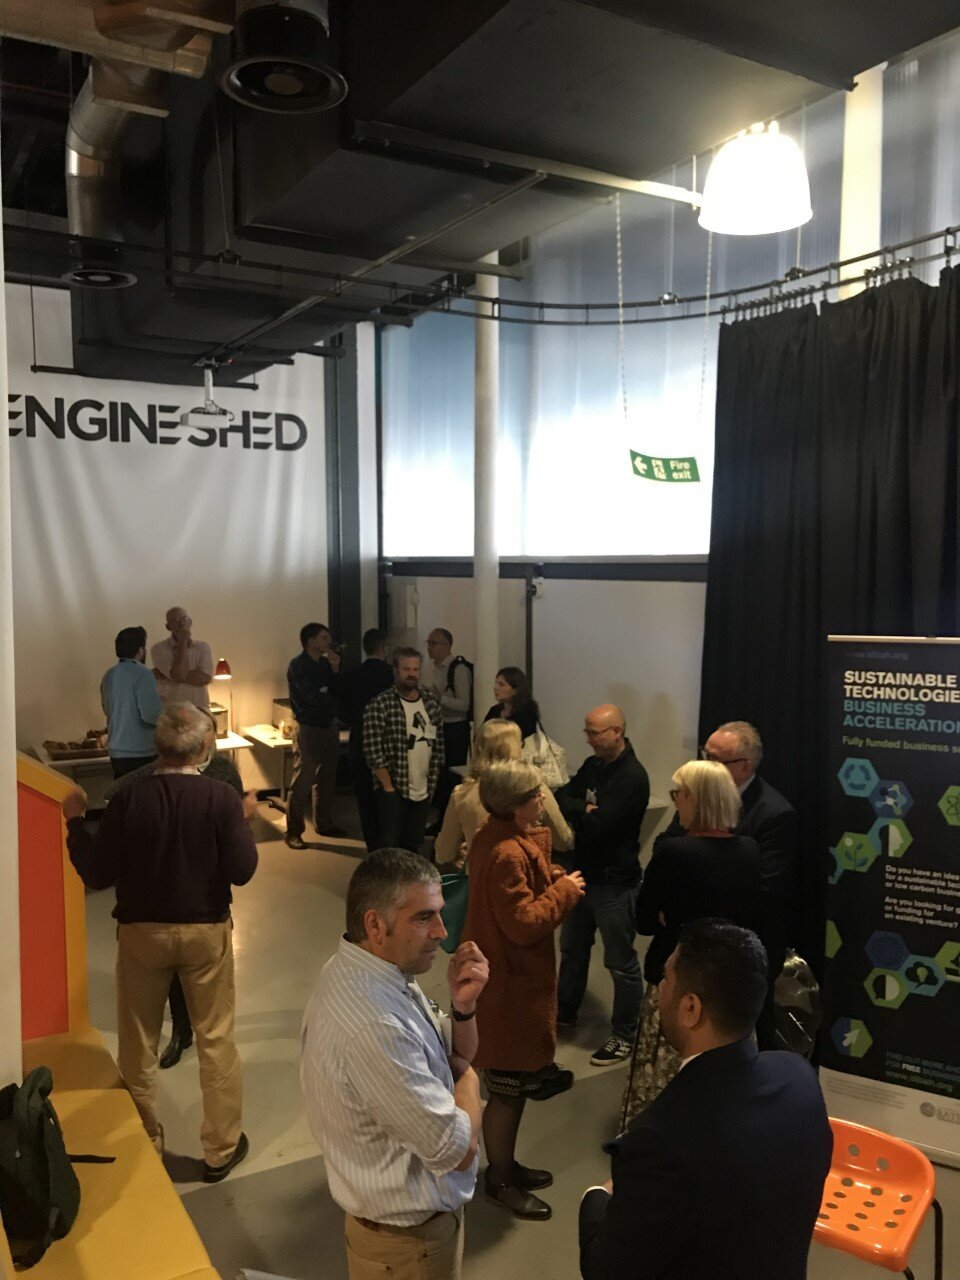 A chance to networking with speakers and attendees at the STBAH Regenerate Natural Systems event